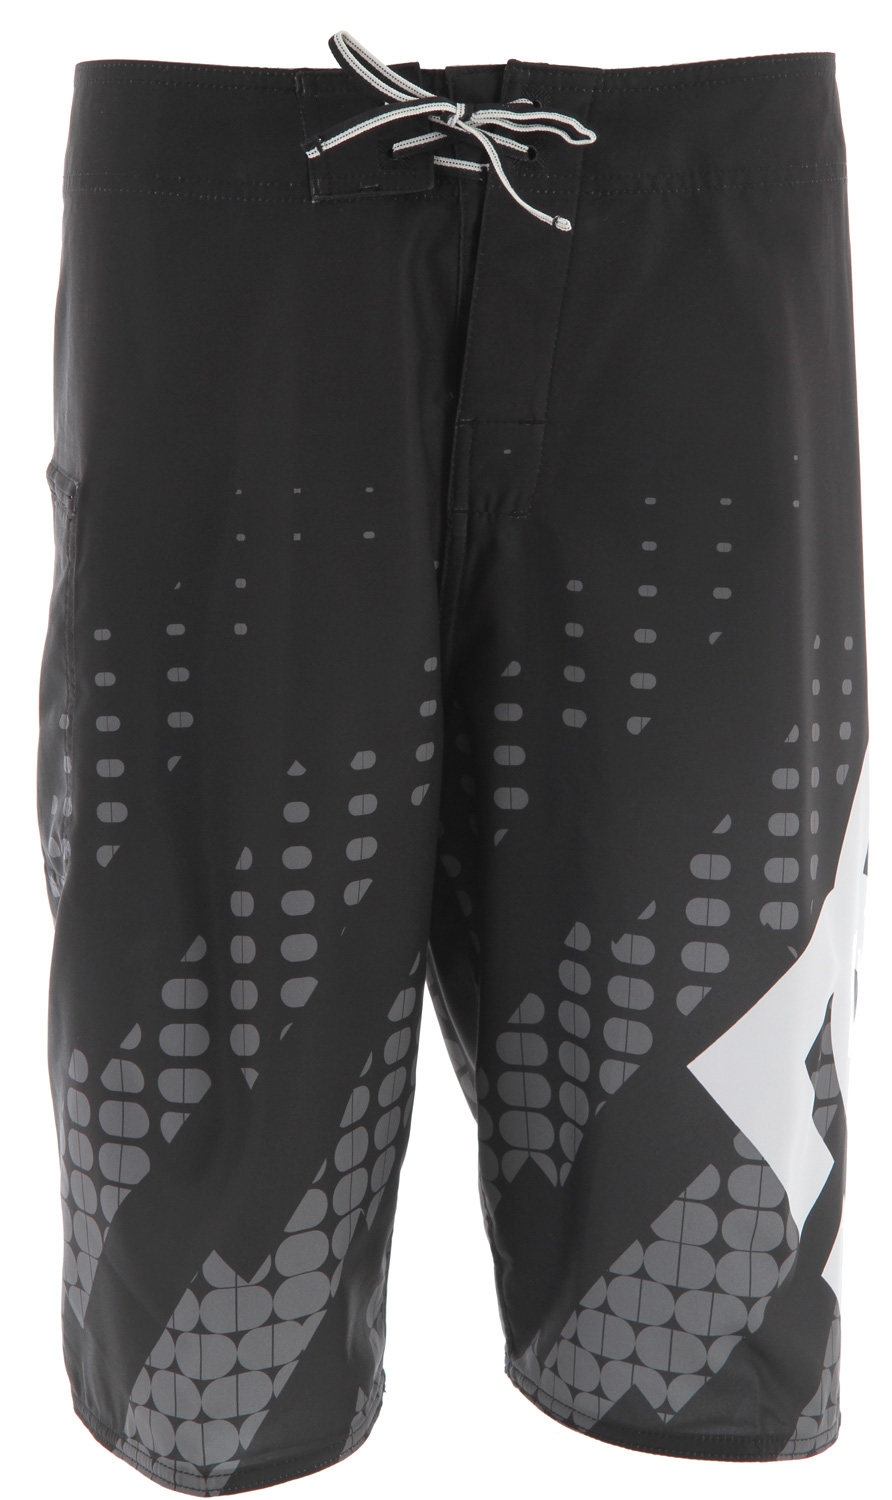 "Skateboard Key Features of the DC Exhaust Boardshorts: Zip pocket Neo fly Lycra lined bottoms Seamless side panels 22"" outseam 4 way mechanical stretch - $46.95"